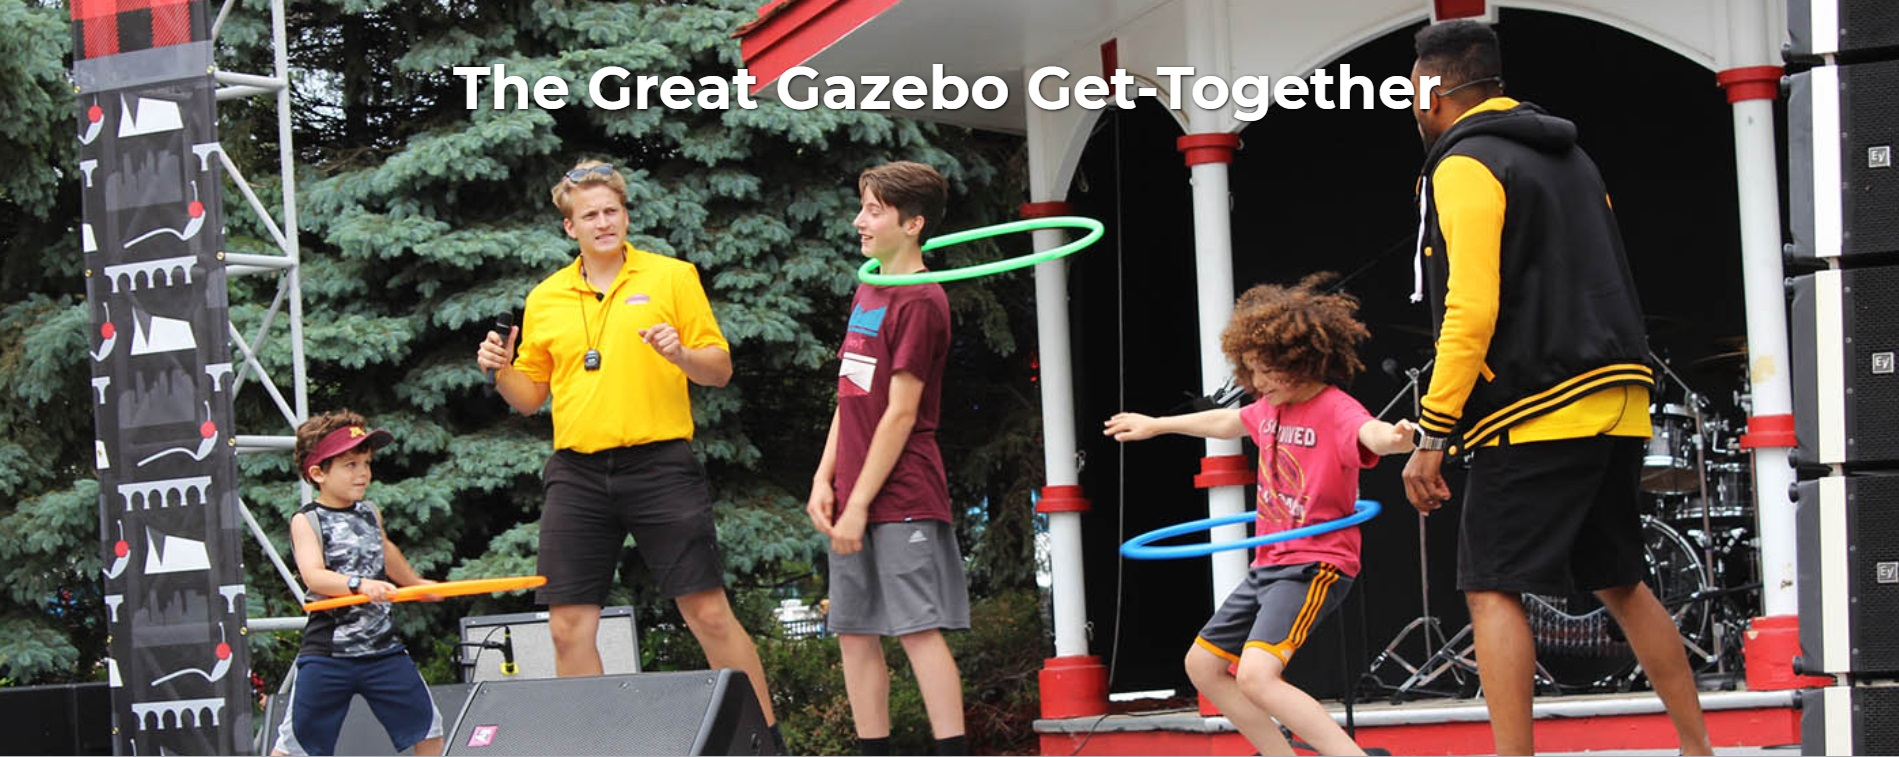 The Great Gazebo Get-Together